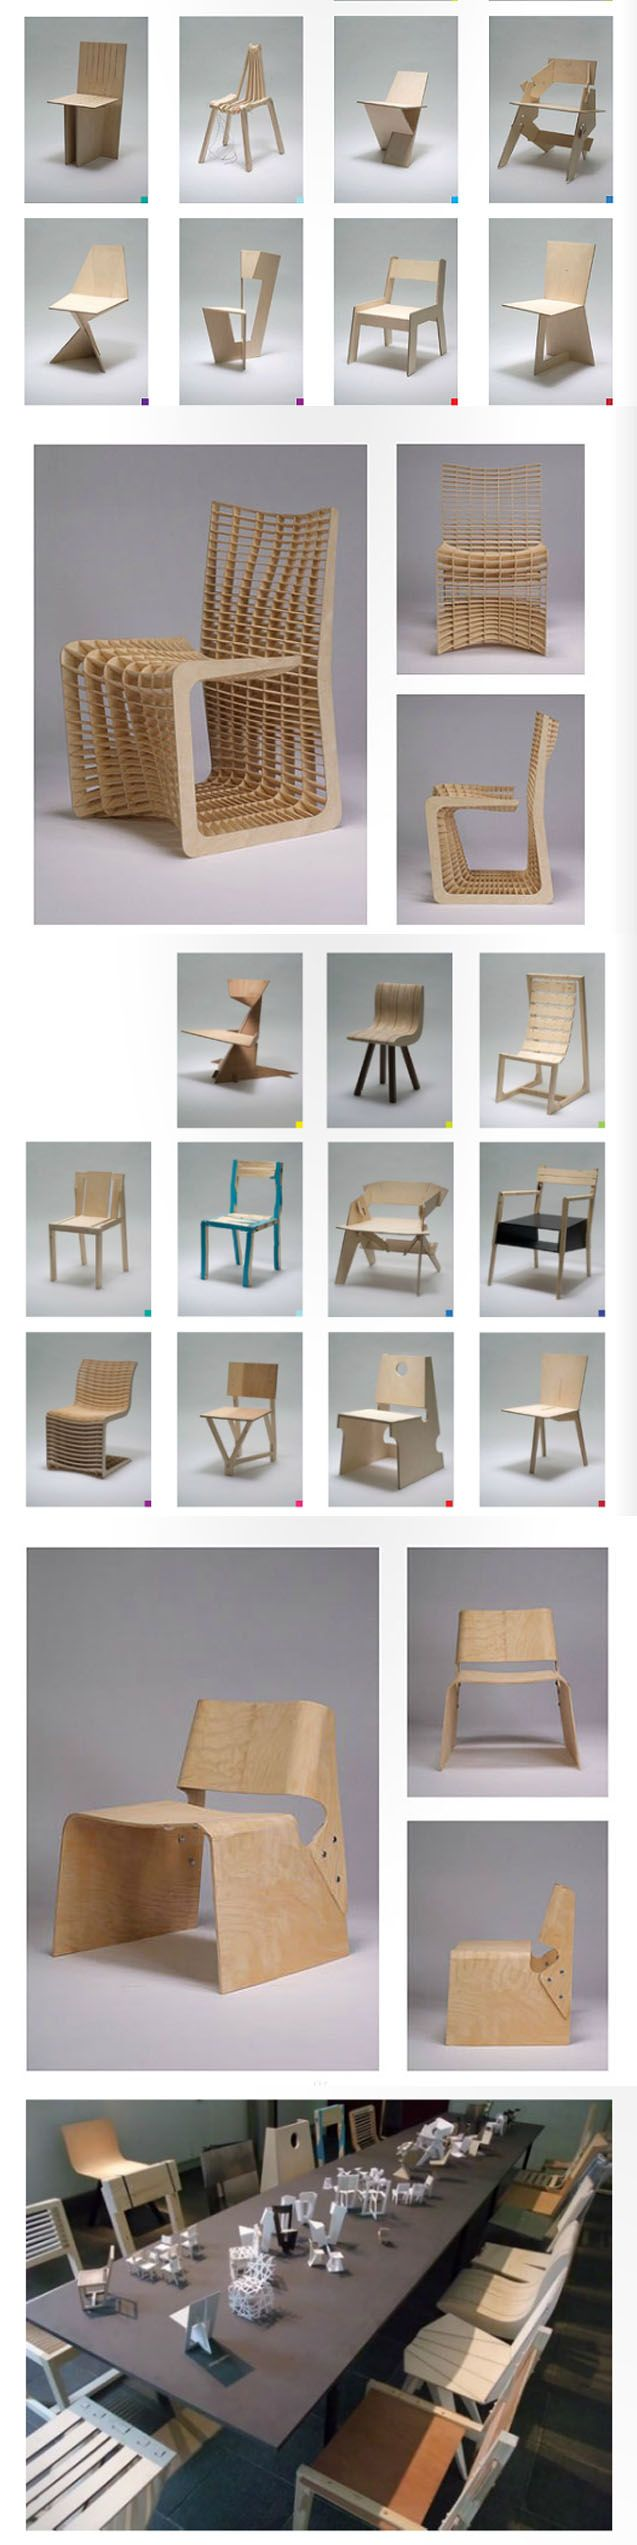 One-Chair-A-Week_Royal-Danish-Academy-Fine-Arts-Architecture_collabcubed